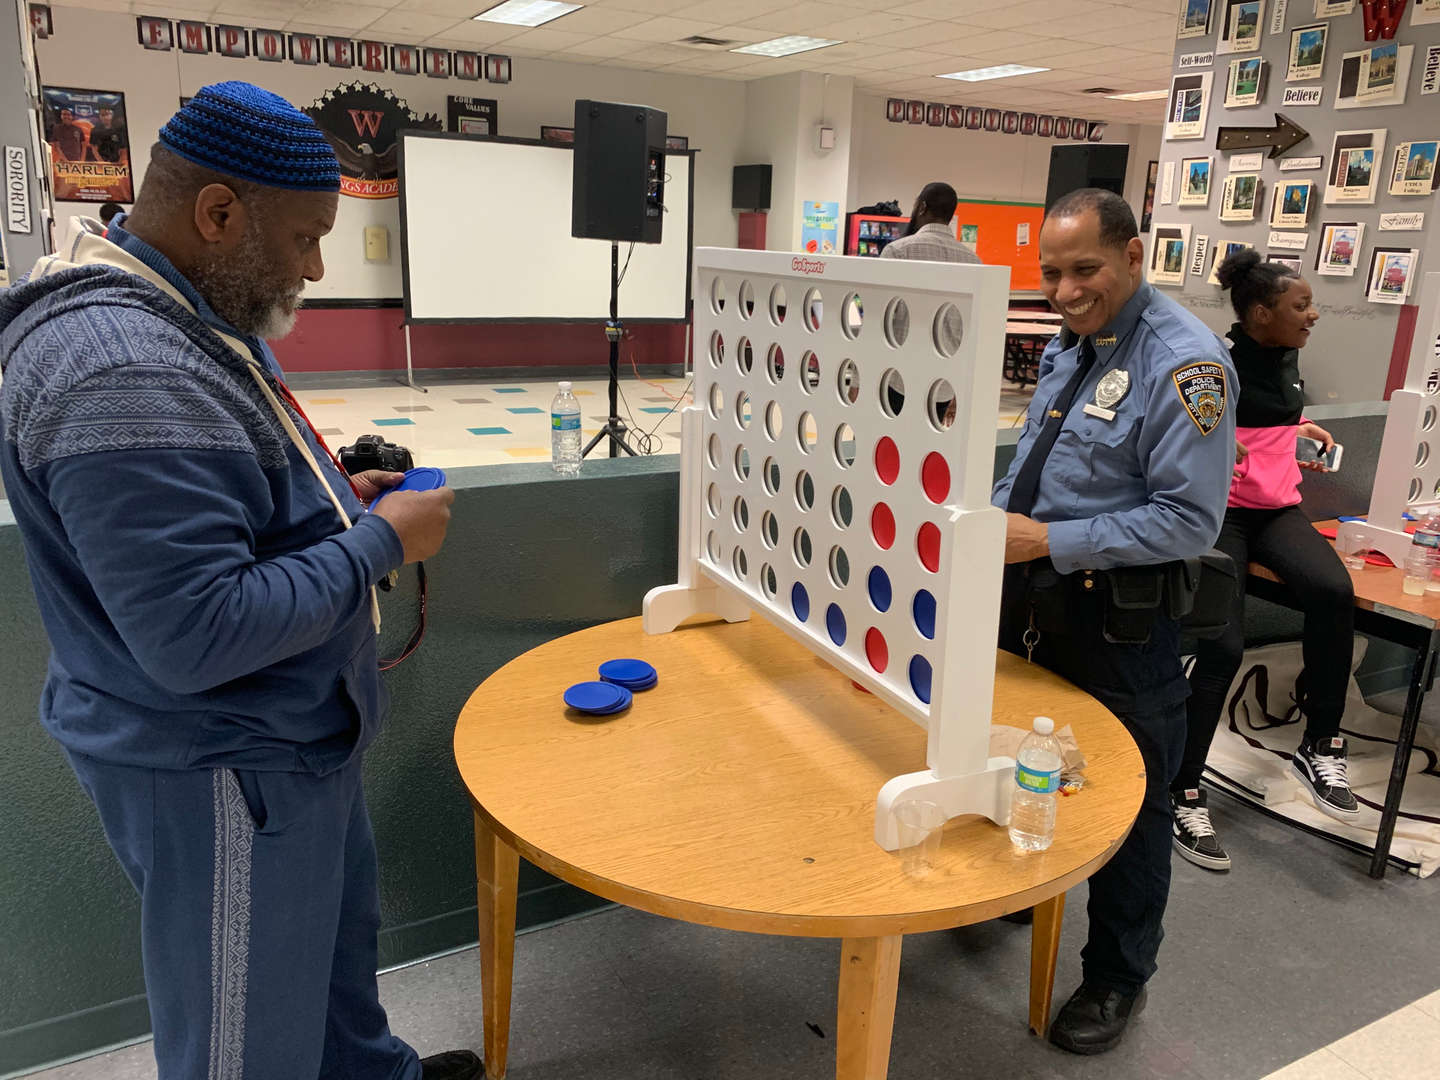 Game Night March 29th 2019 featuring Science teacher Mr. Wood and SSA Good.